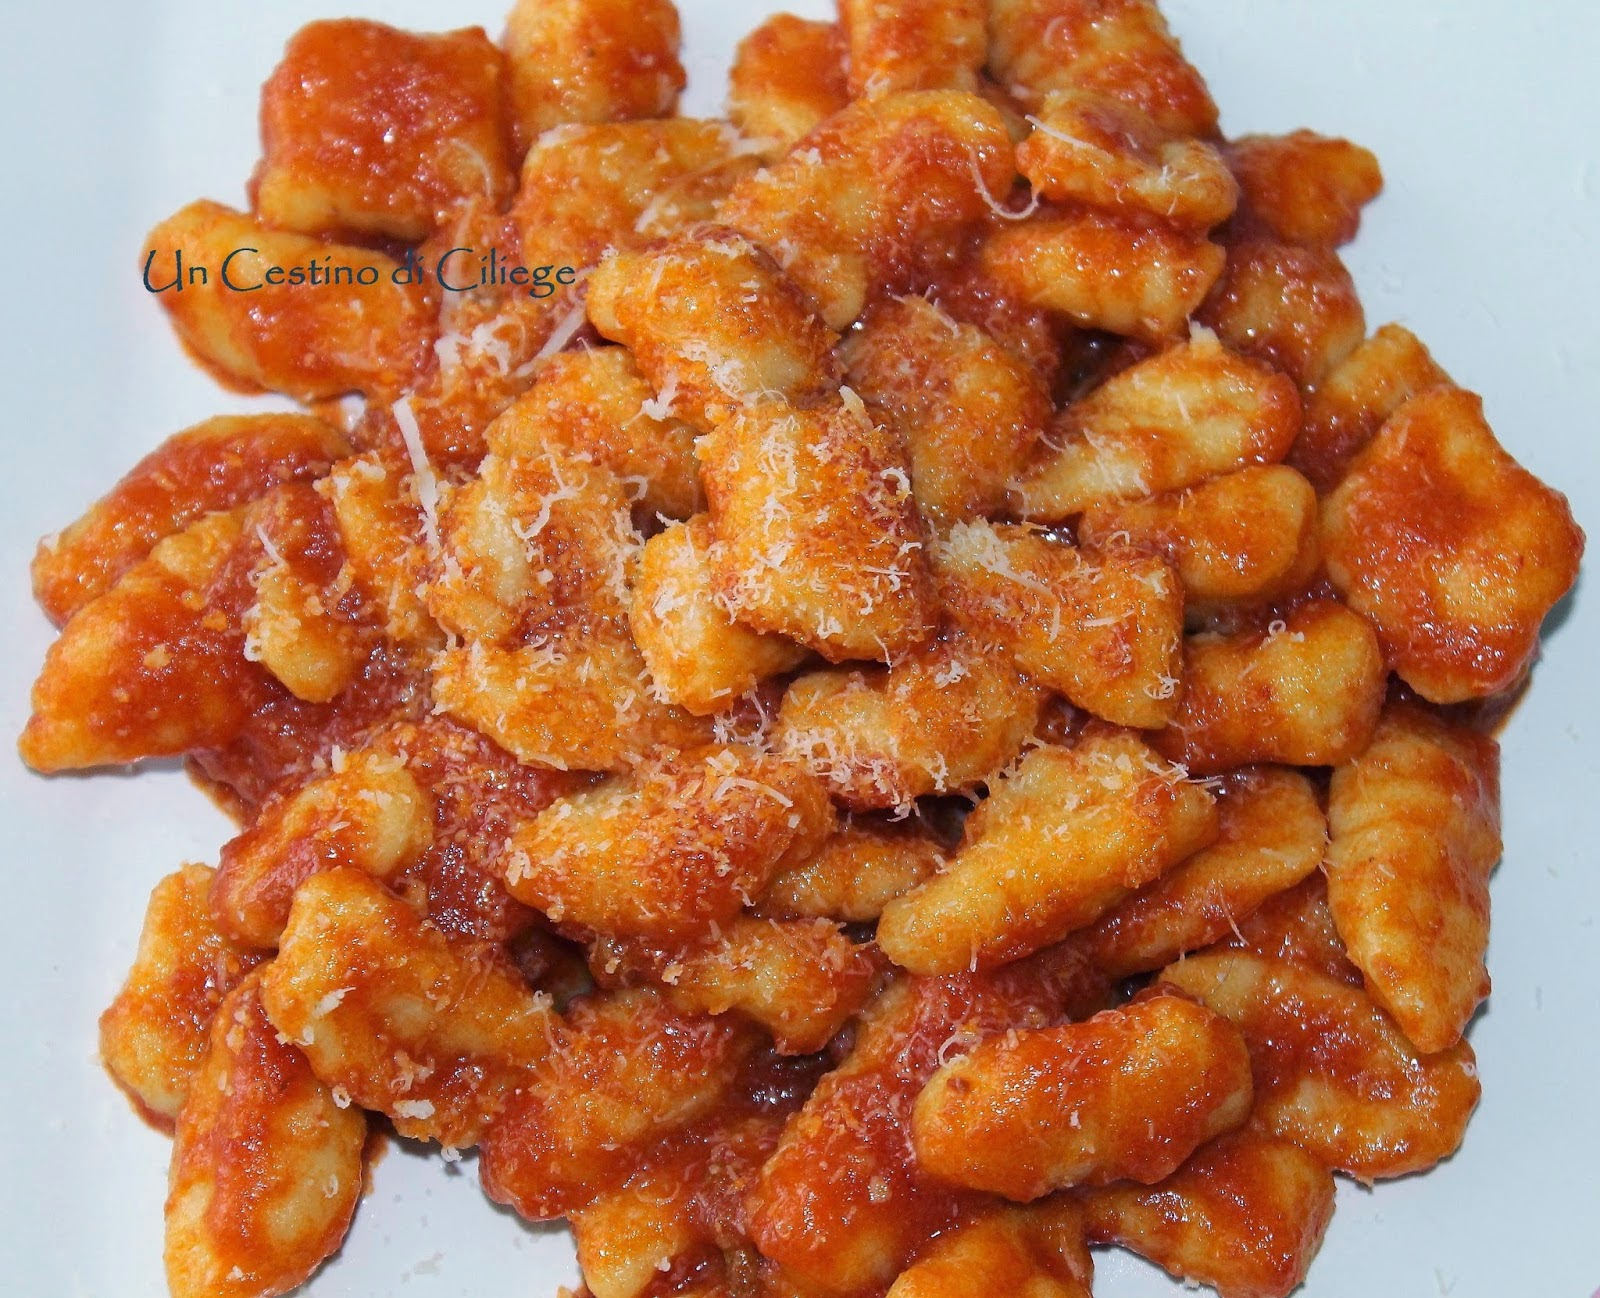 http://uncestinodiciliege.blogspot.it/2014/11/gnocchi-di-patate-al-pomodoro.html?utm_source=bp_recent&utm-medium=gadget&utm_campaign=bp_recent